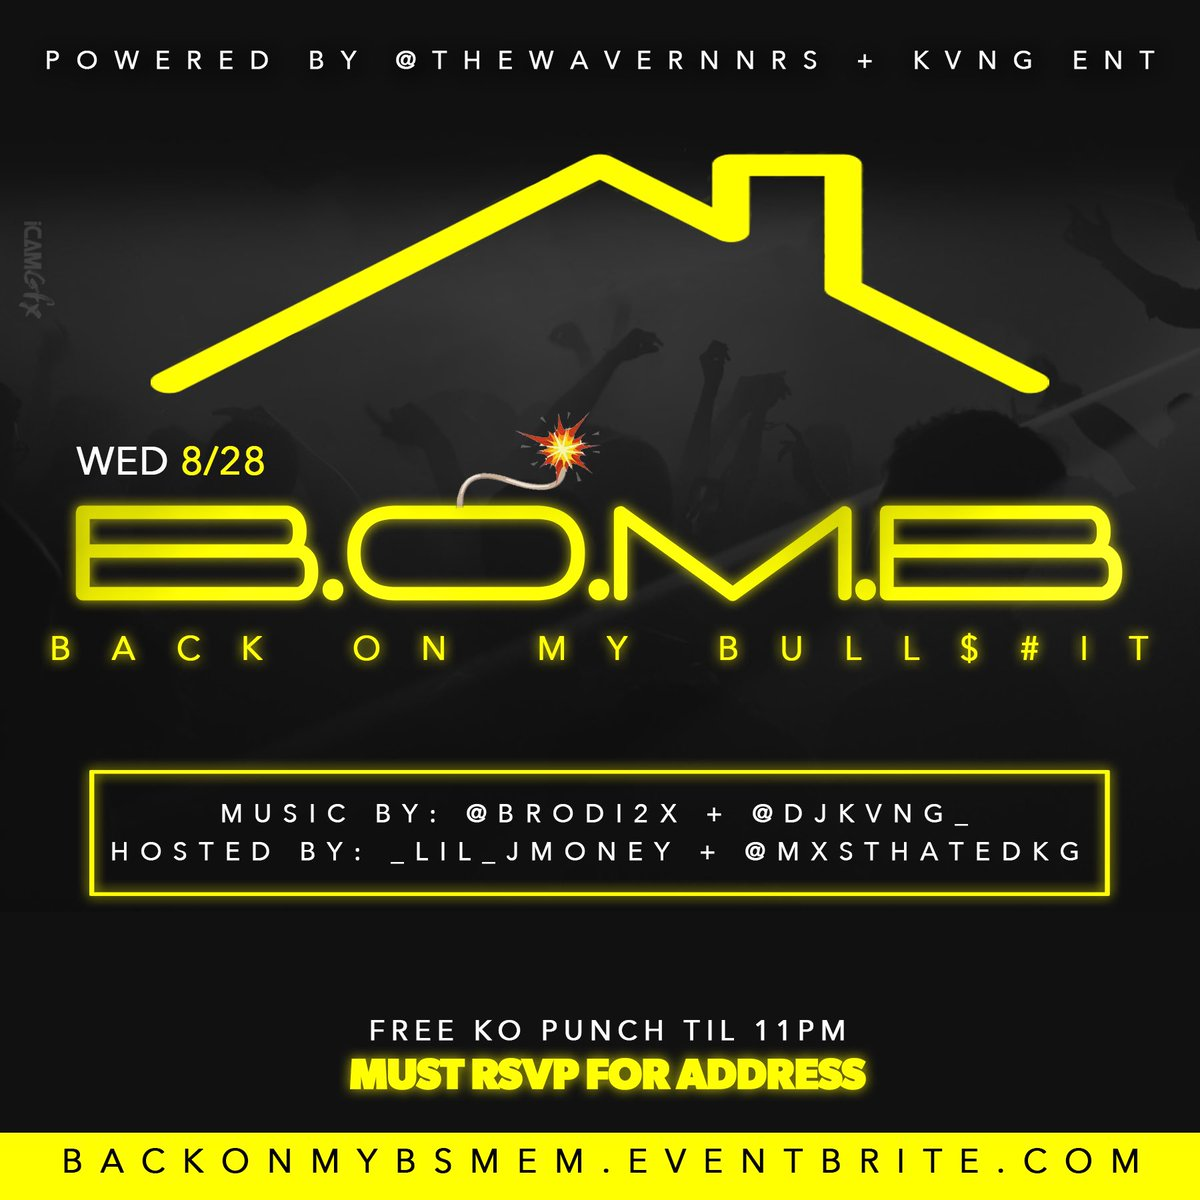 First House Party  of the Semester & We On Some Real Drunk shit  FREE KO PUNCH til 11  Hit the Link Below to RSVP, ADDRESS WILL BE SENT OUT THE DAY BEFORE THE EVENT .  RSVP Link:  http:// backonmybsmem.eventbrite.com       POWERED BY: @THEWAVERNNRS   #UofM20 #UofM21 #UofM22 #UofM23 <br>http://pic.twitter.com/qjjBXT8W1U